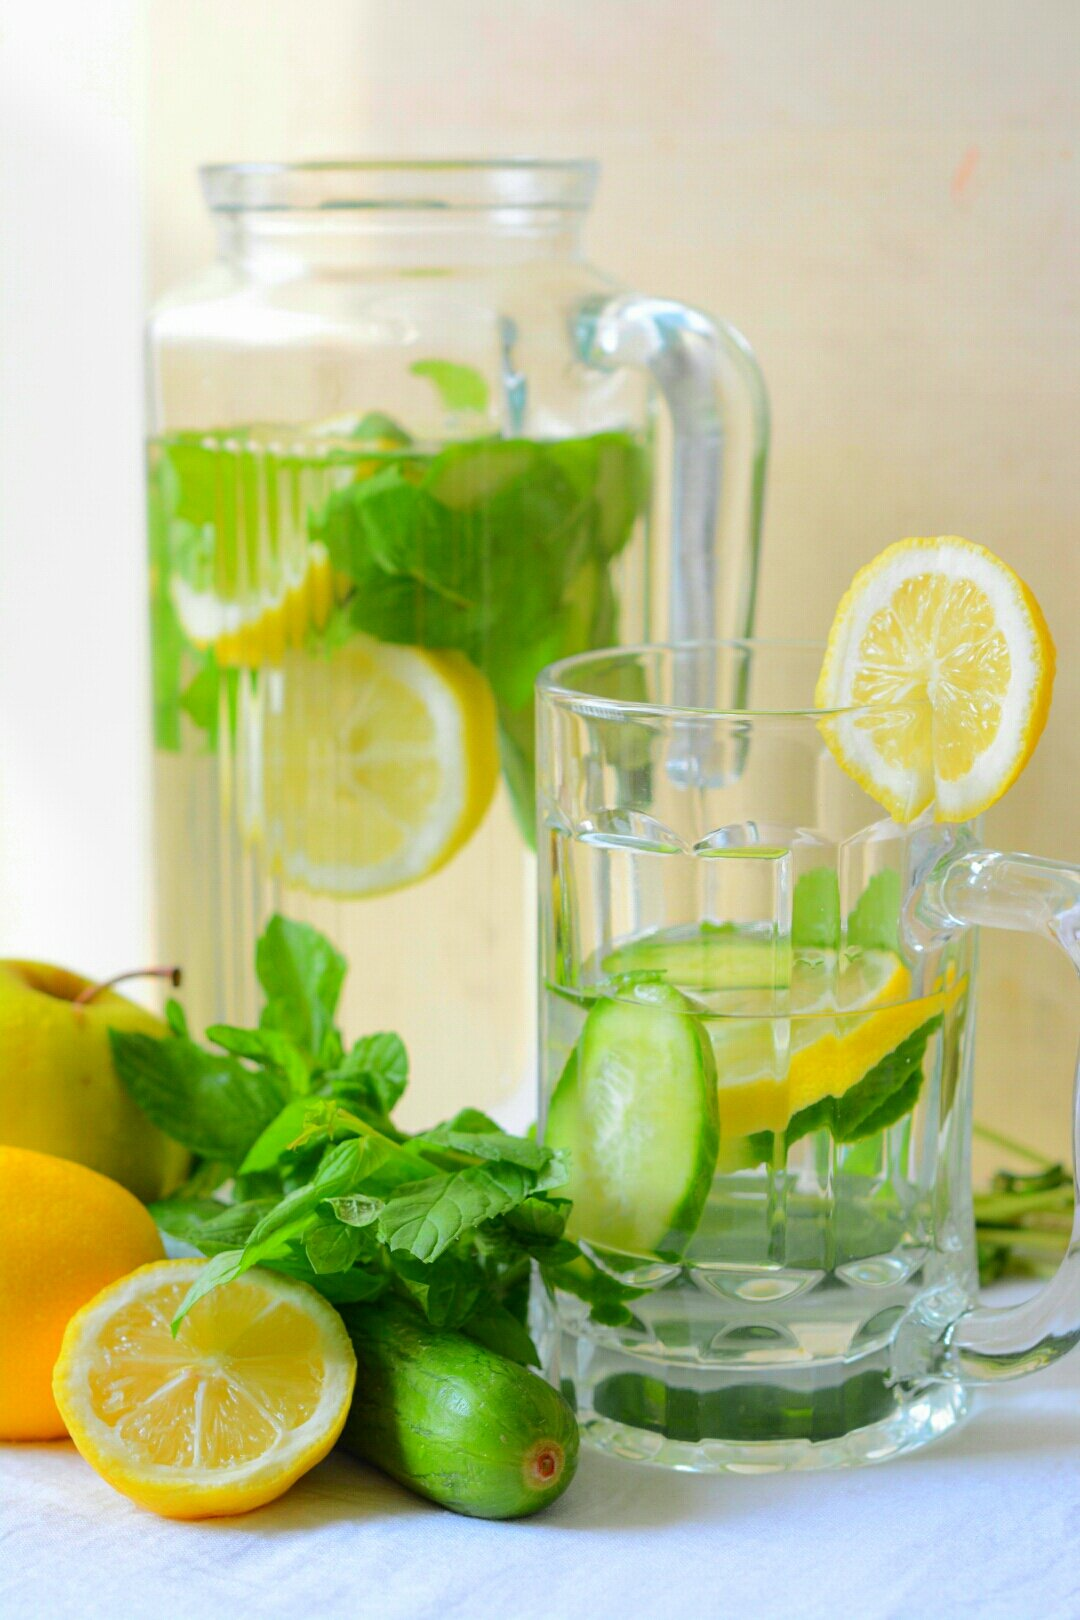 Stimulating ginger, with calm and soothing cucumber and sprightly lemon, makes this a delicious, energizing and uplifting detox water recipe. And it may also .